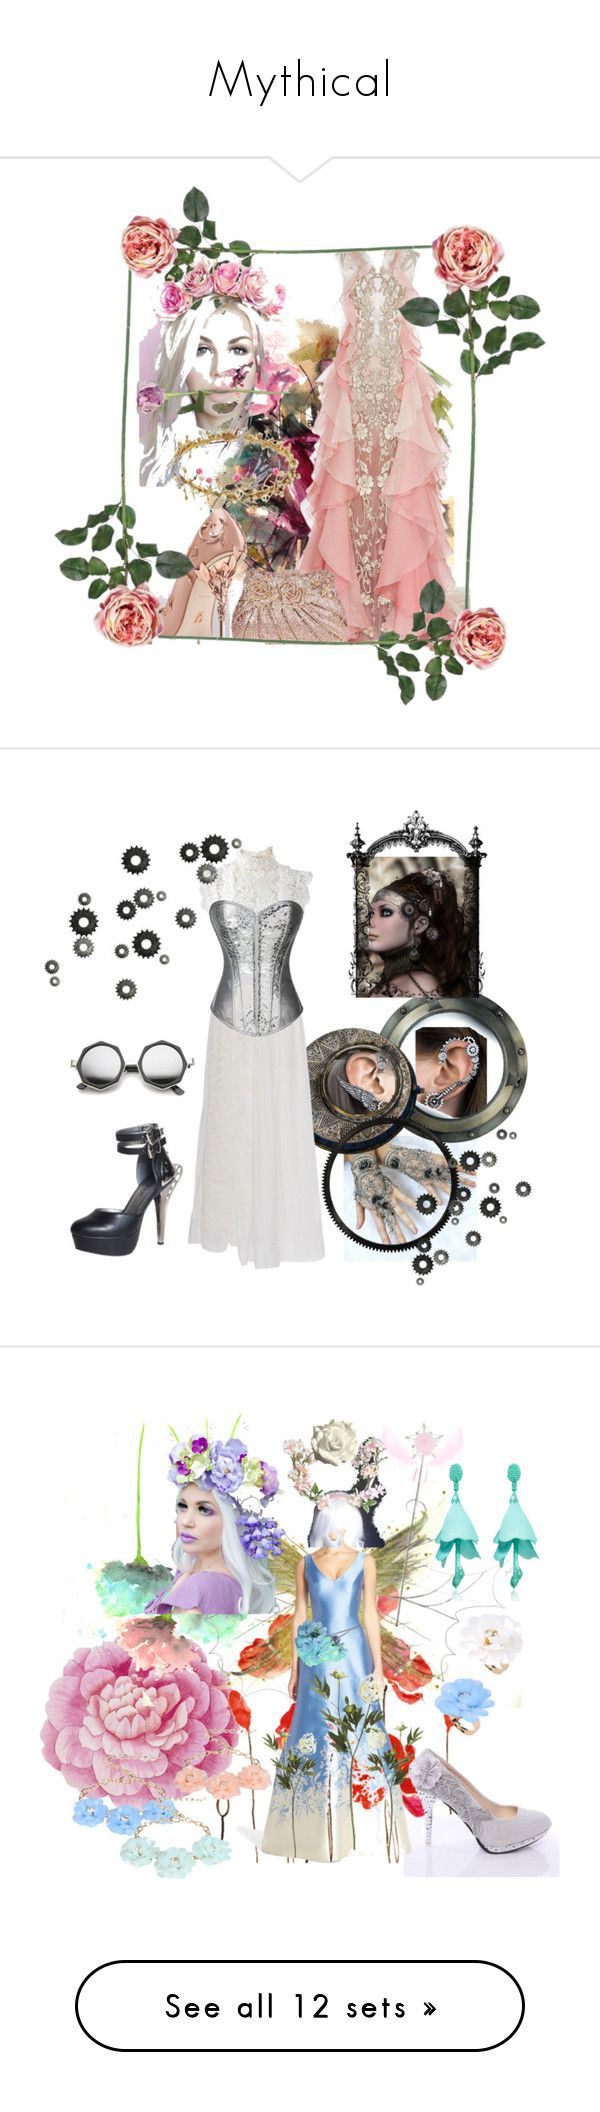 """""""Mythical"""" by adele-h-pocketbook ❤ liked on Polyvore featuring art, Flowers, HADES, Oscar de la Renta, ZeroUV, Kenroy Home, lila.eugenie, Silver, steampunk and Ballard Designs"""